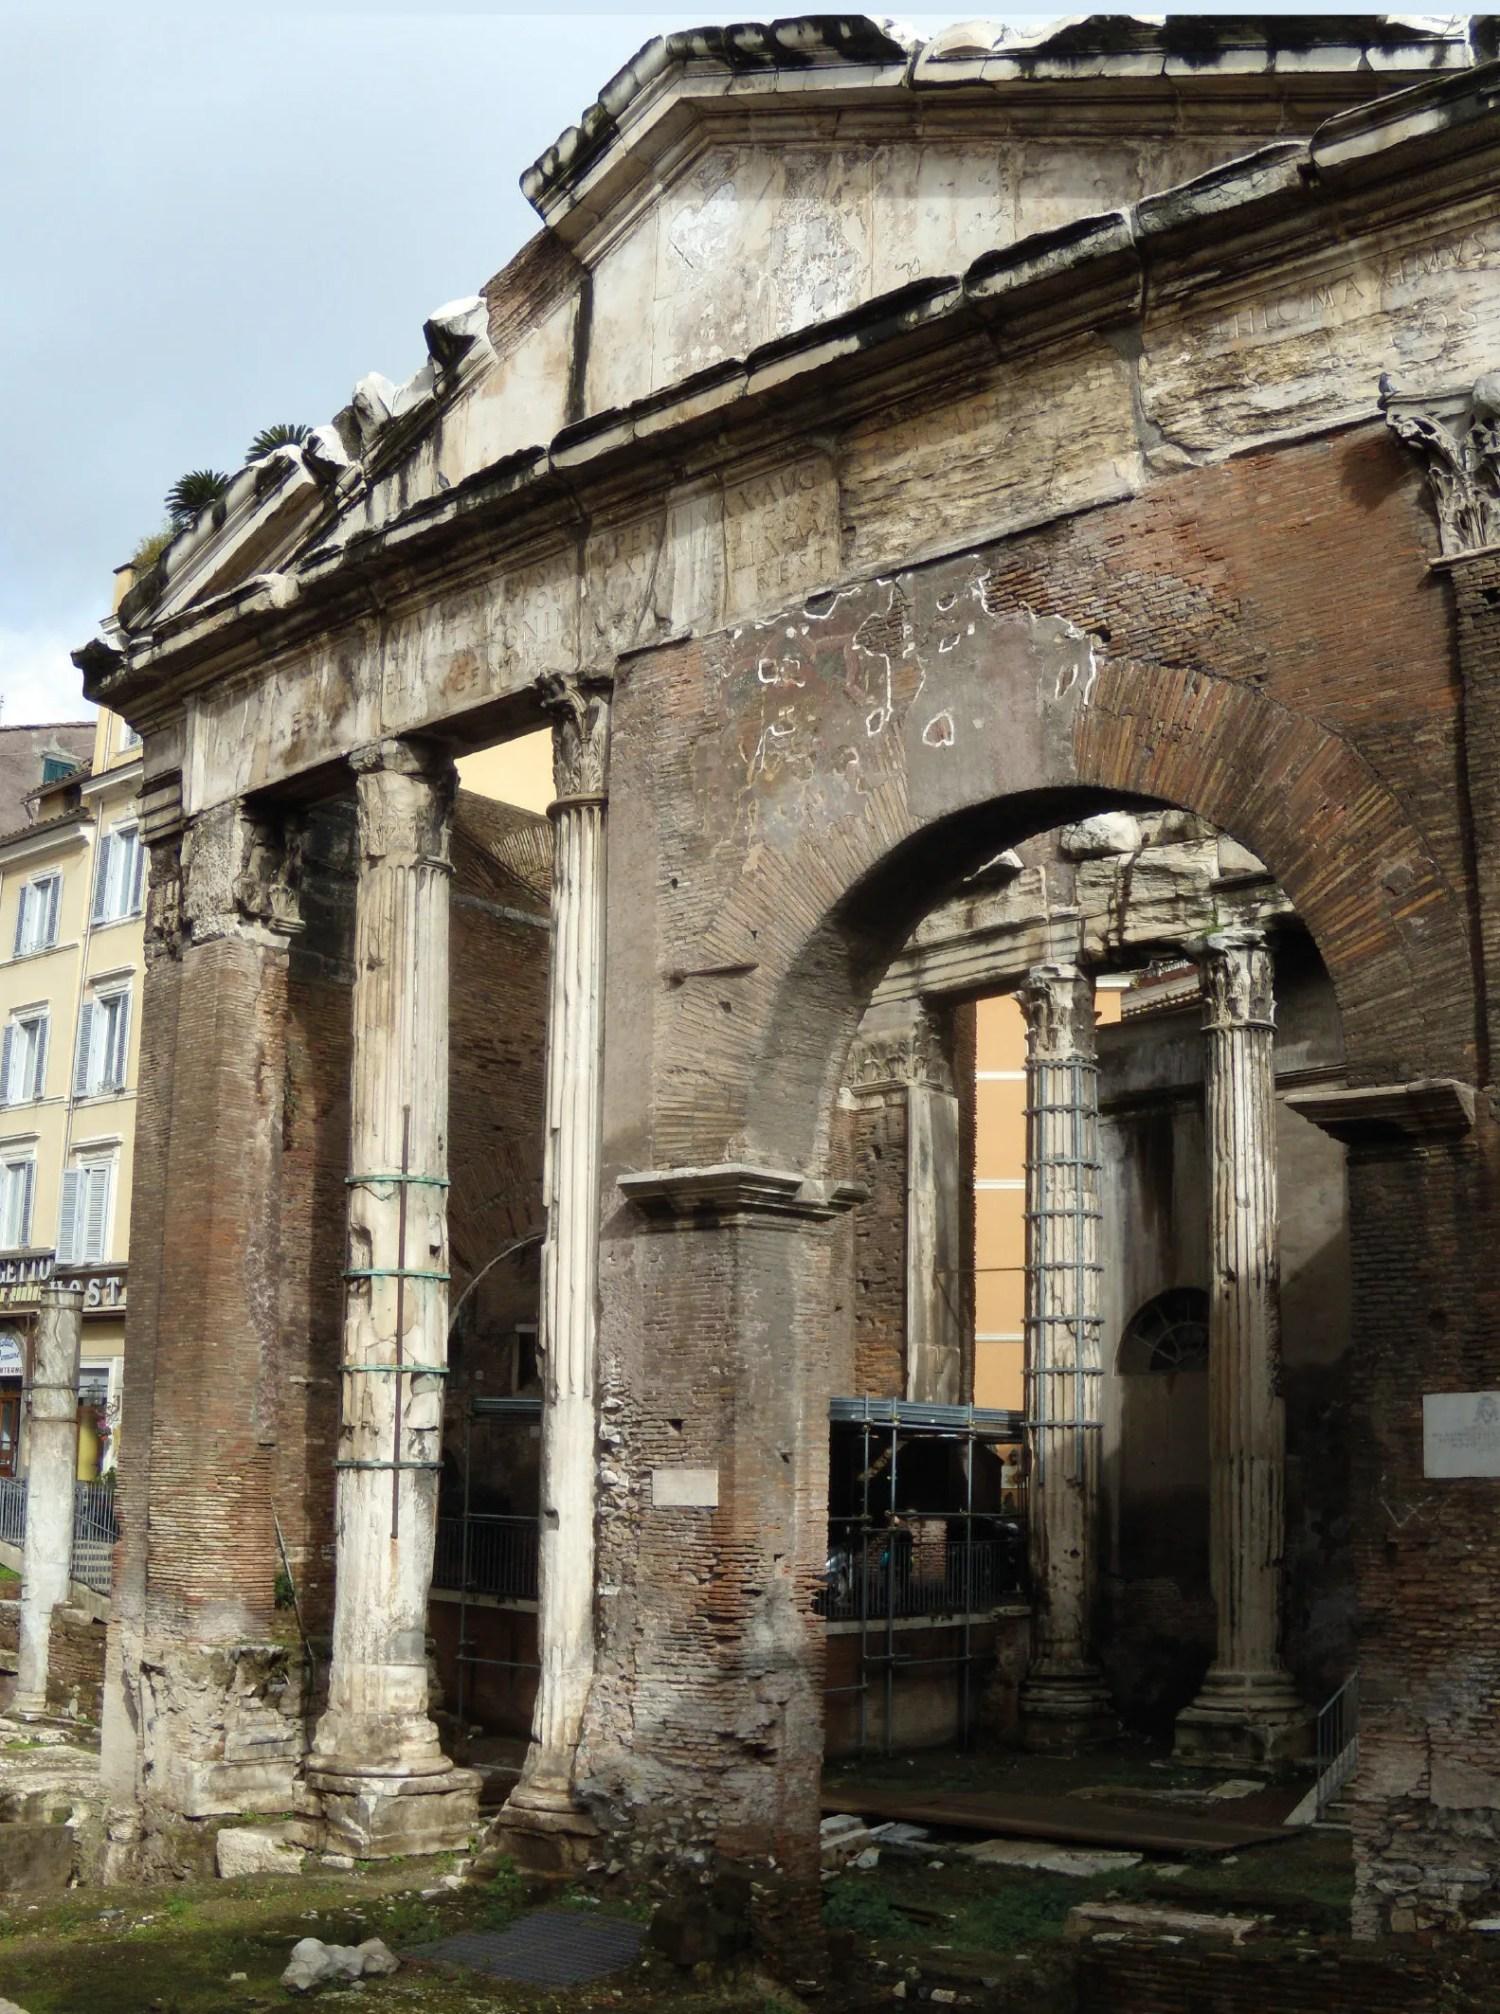 3. The monumental gateway, which was reconstructed during the Severan dynasty, (AD 193 235) is all that survives of the Porticus of Octavia, 27 25 BC. 4. Cistophoric tetradrachm with Emperor Claudius and Agrippina the Younger, exceptionally shown in the manner of joint rulers, AD 51, silver, minted in Epheseus. D. 26mm. 5. Sestertius of Agrippina the Elder, AD 42, shown as a heroic matron and, implicitly, as a victim of Tiberius, struck posthumously under Claudius, her brother-in-law. D. 32mm.